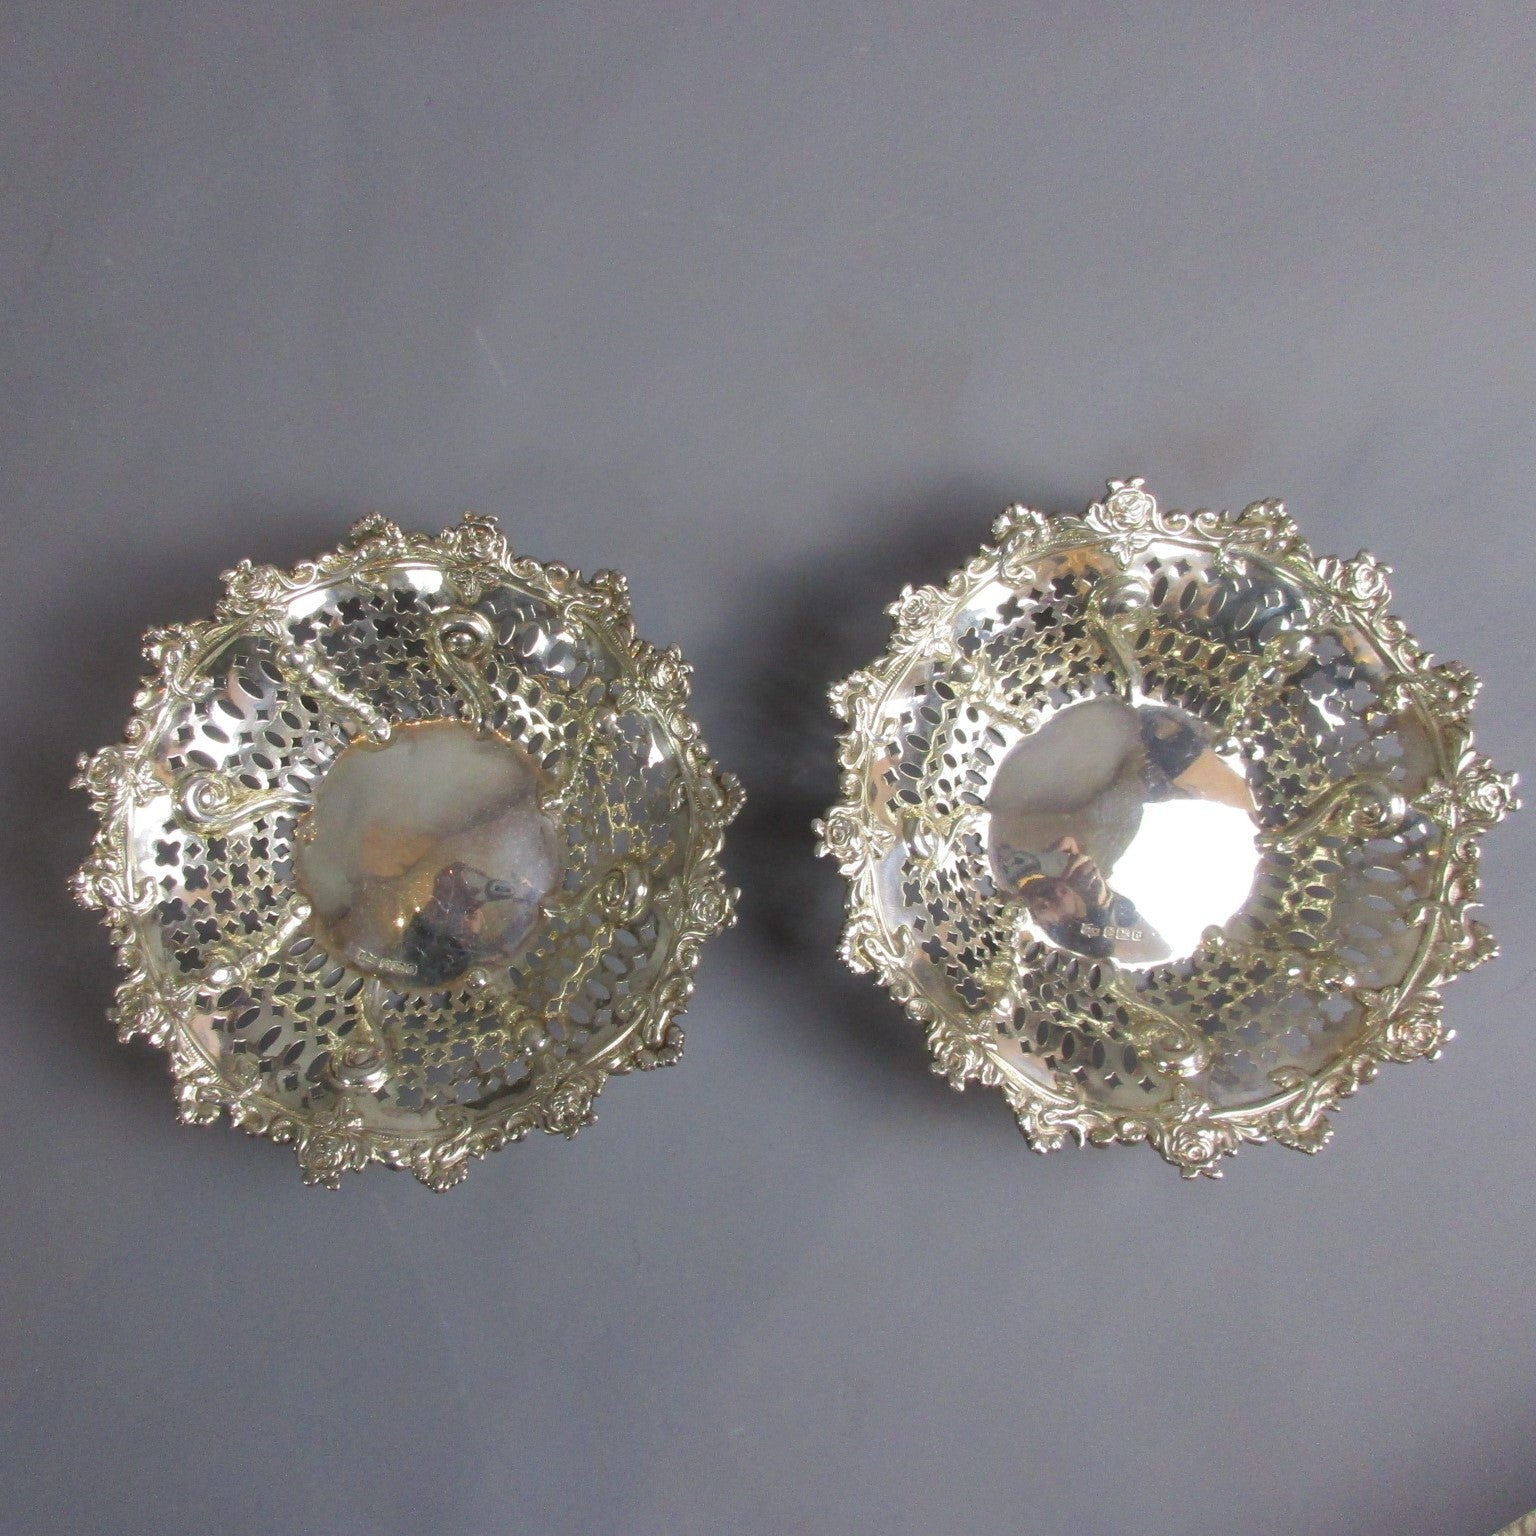 Pair Of Sterling Silver Bon Bon Dishes Antique Edwardian Sheffield 1906